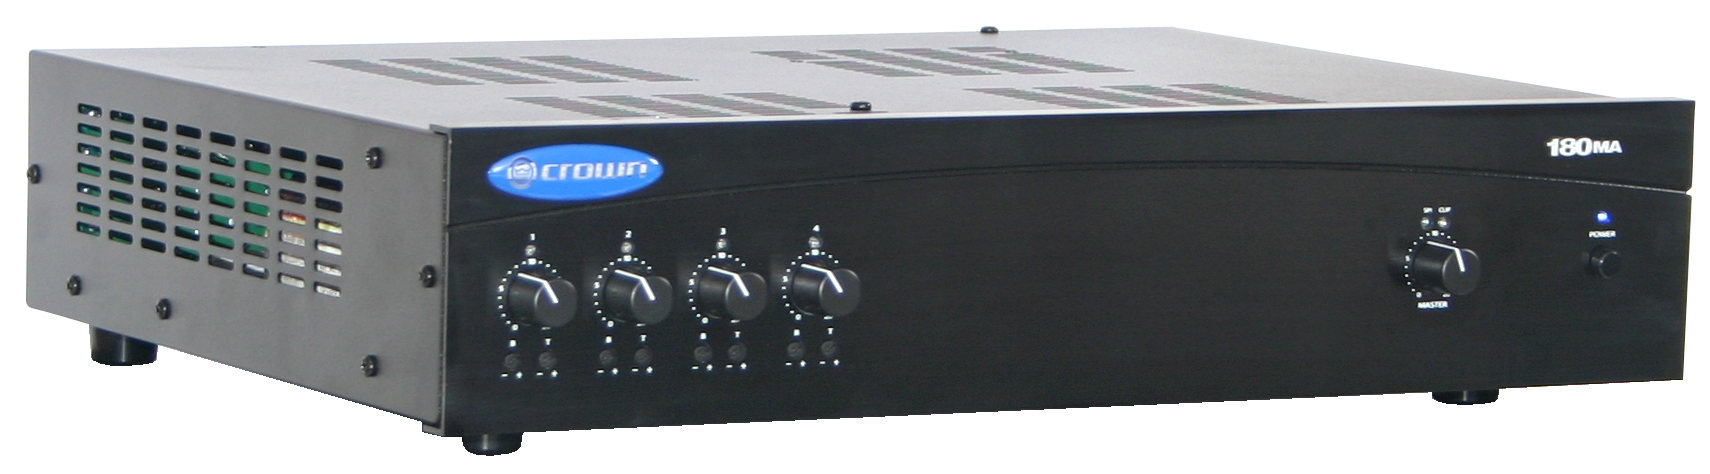 180ma crown audio professional power amplifiers rh crownaudio com Crown Audio 180mA Amplifier Crown 280mA Manual